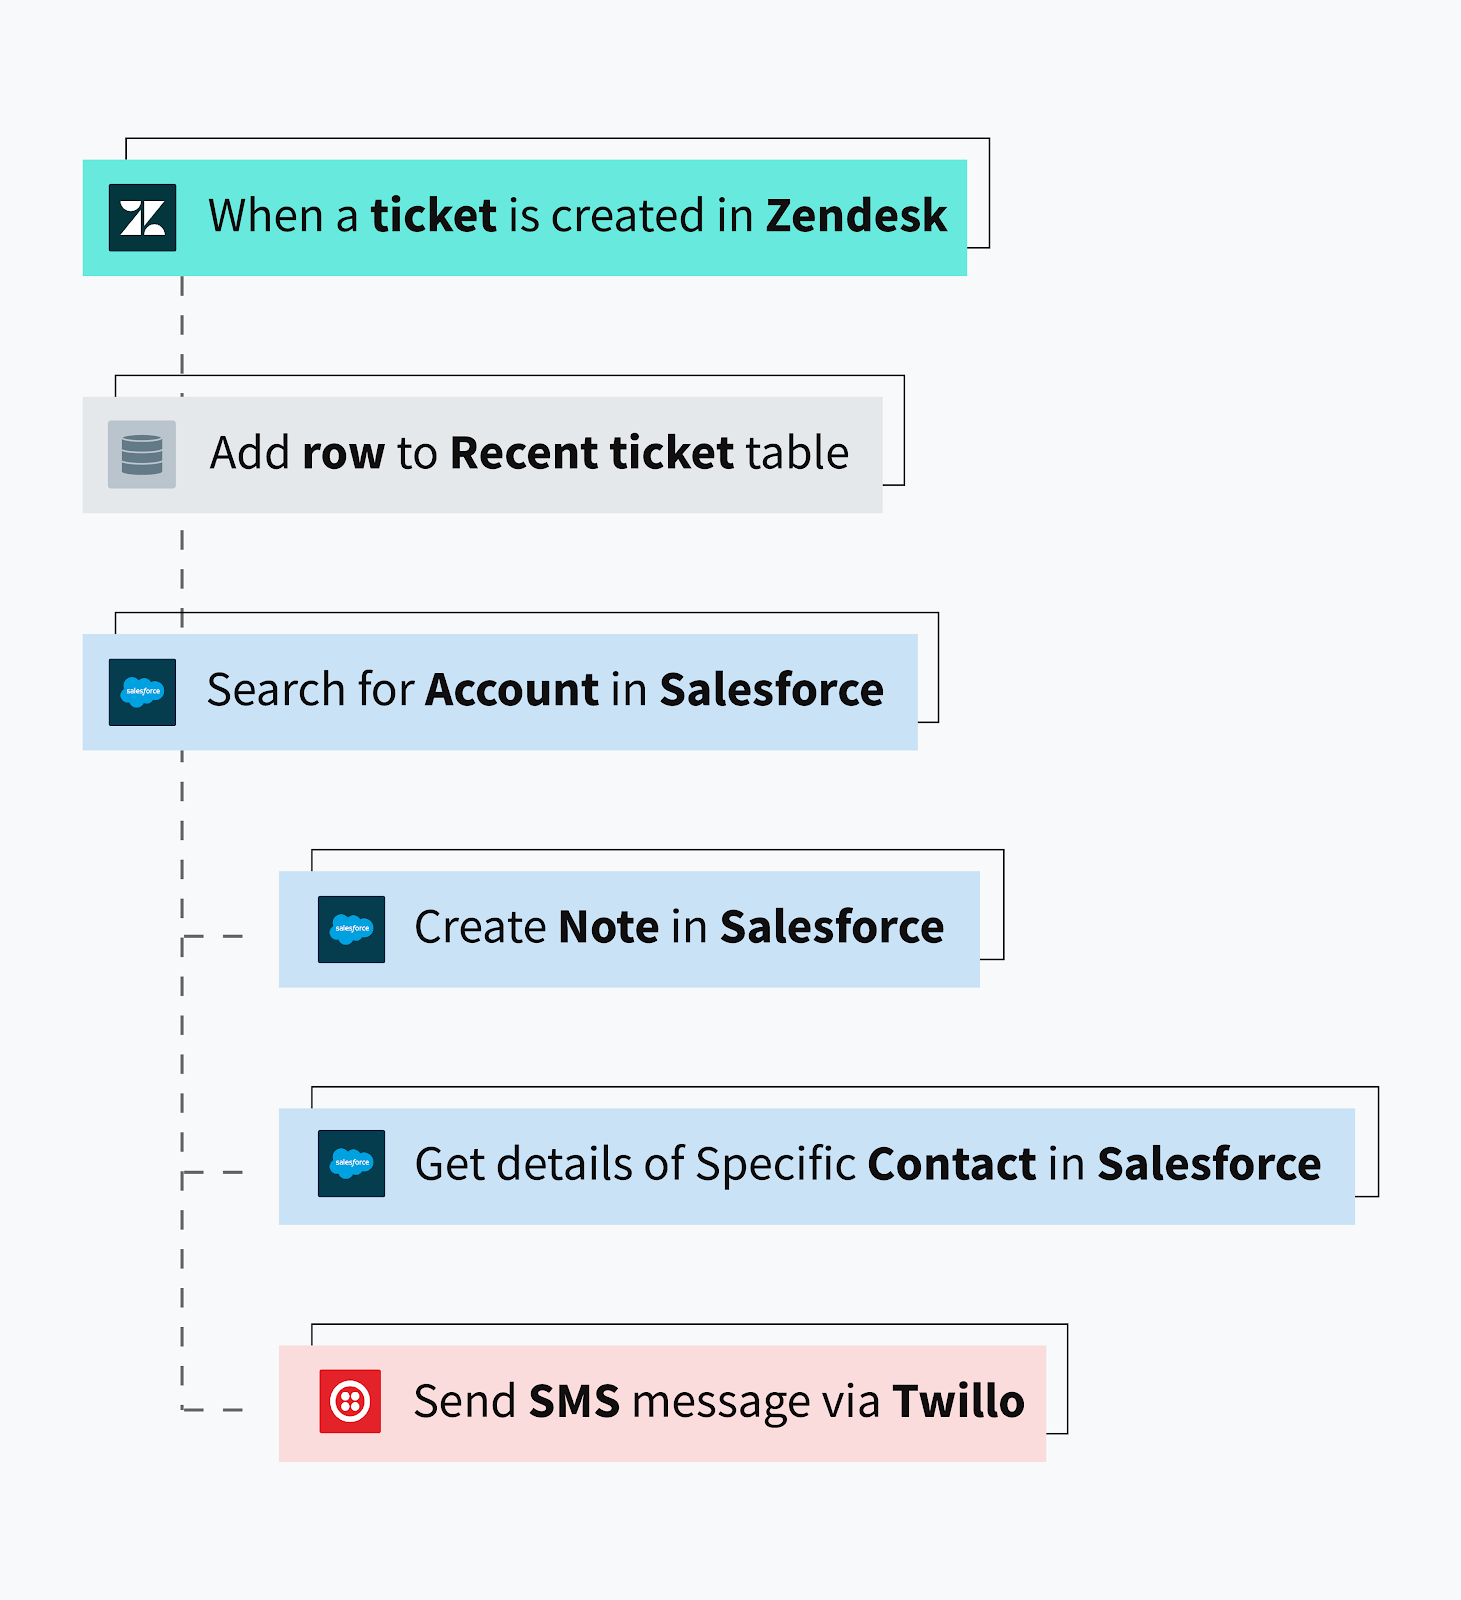 An example of a business process workflow between Zendesk, Salesforce, and Twilio.